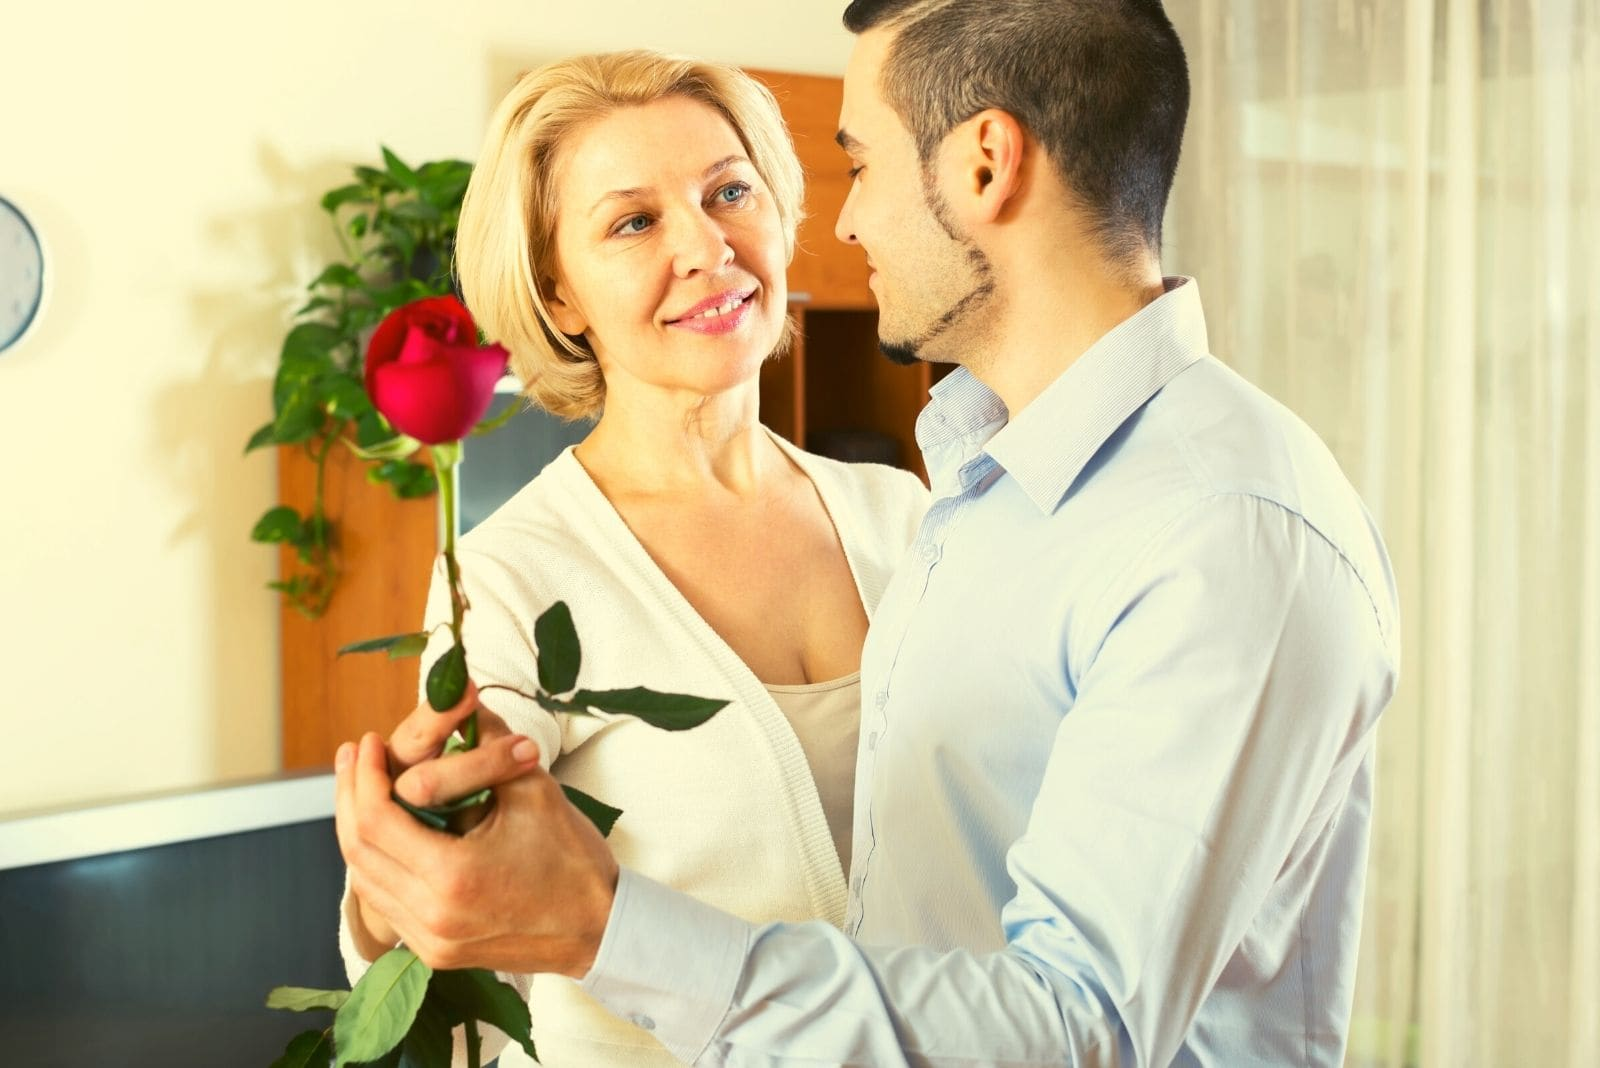 older woman dancing with a young man holding a rose inside the living room